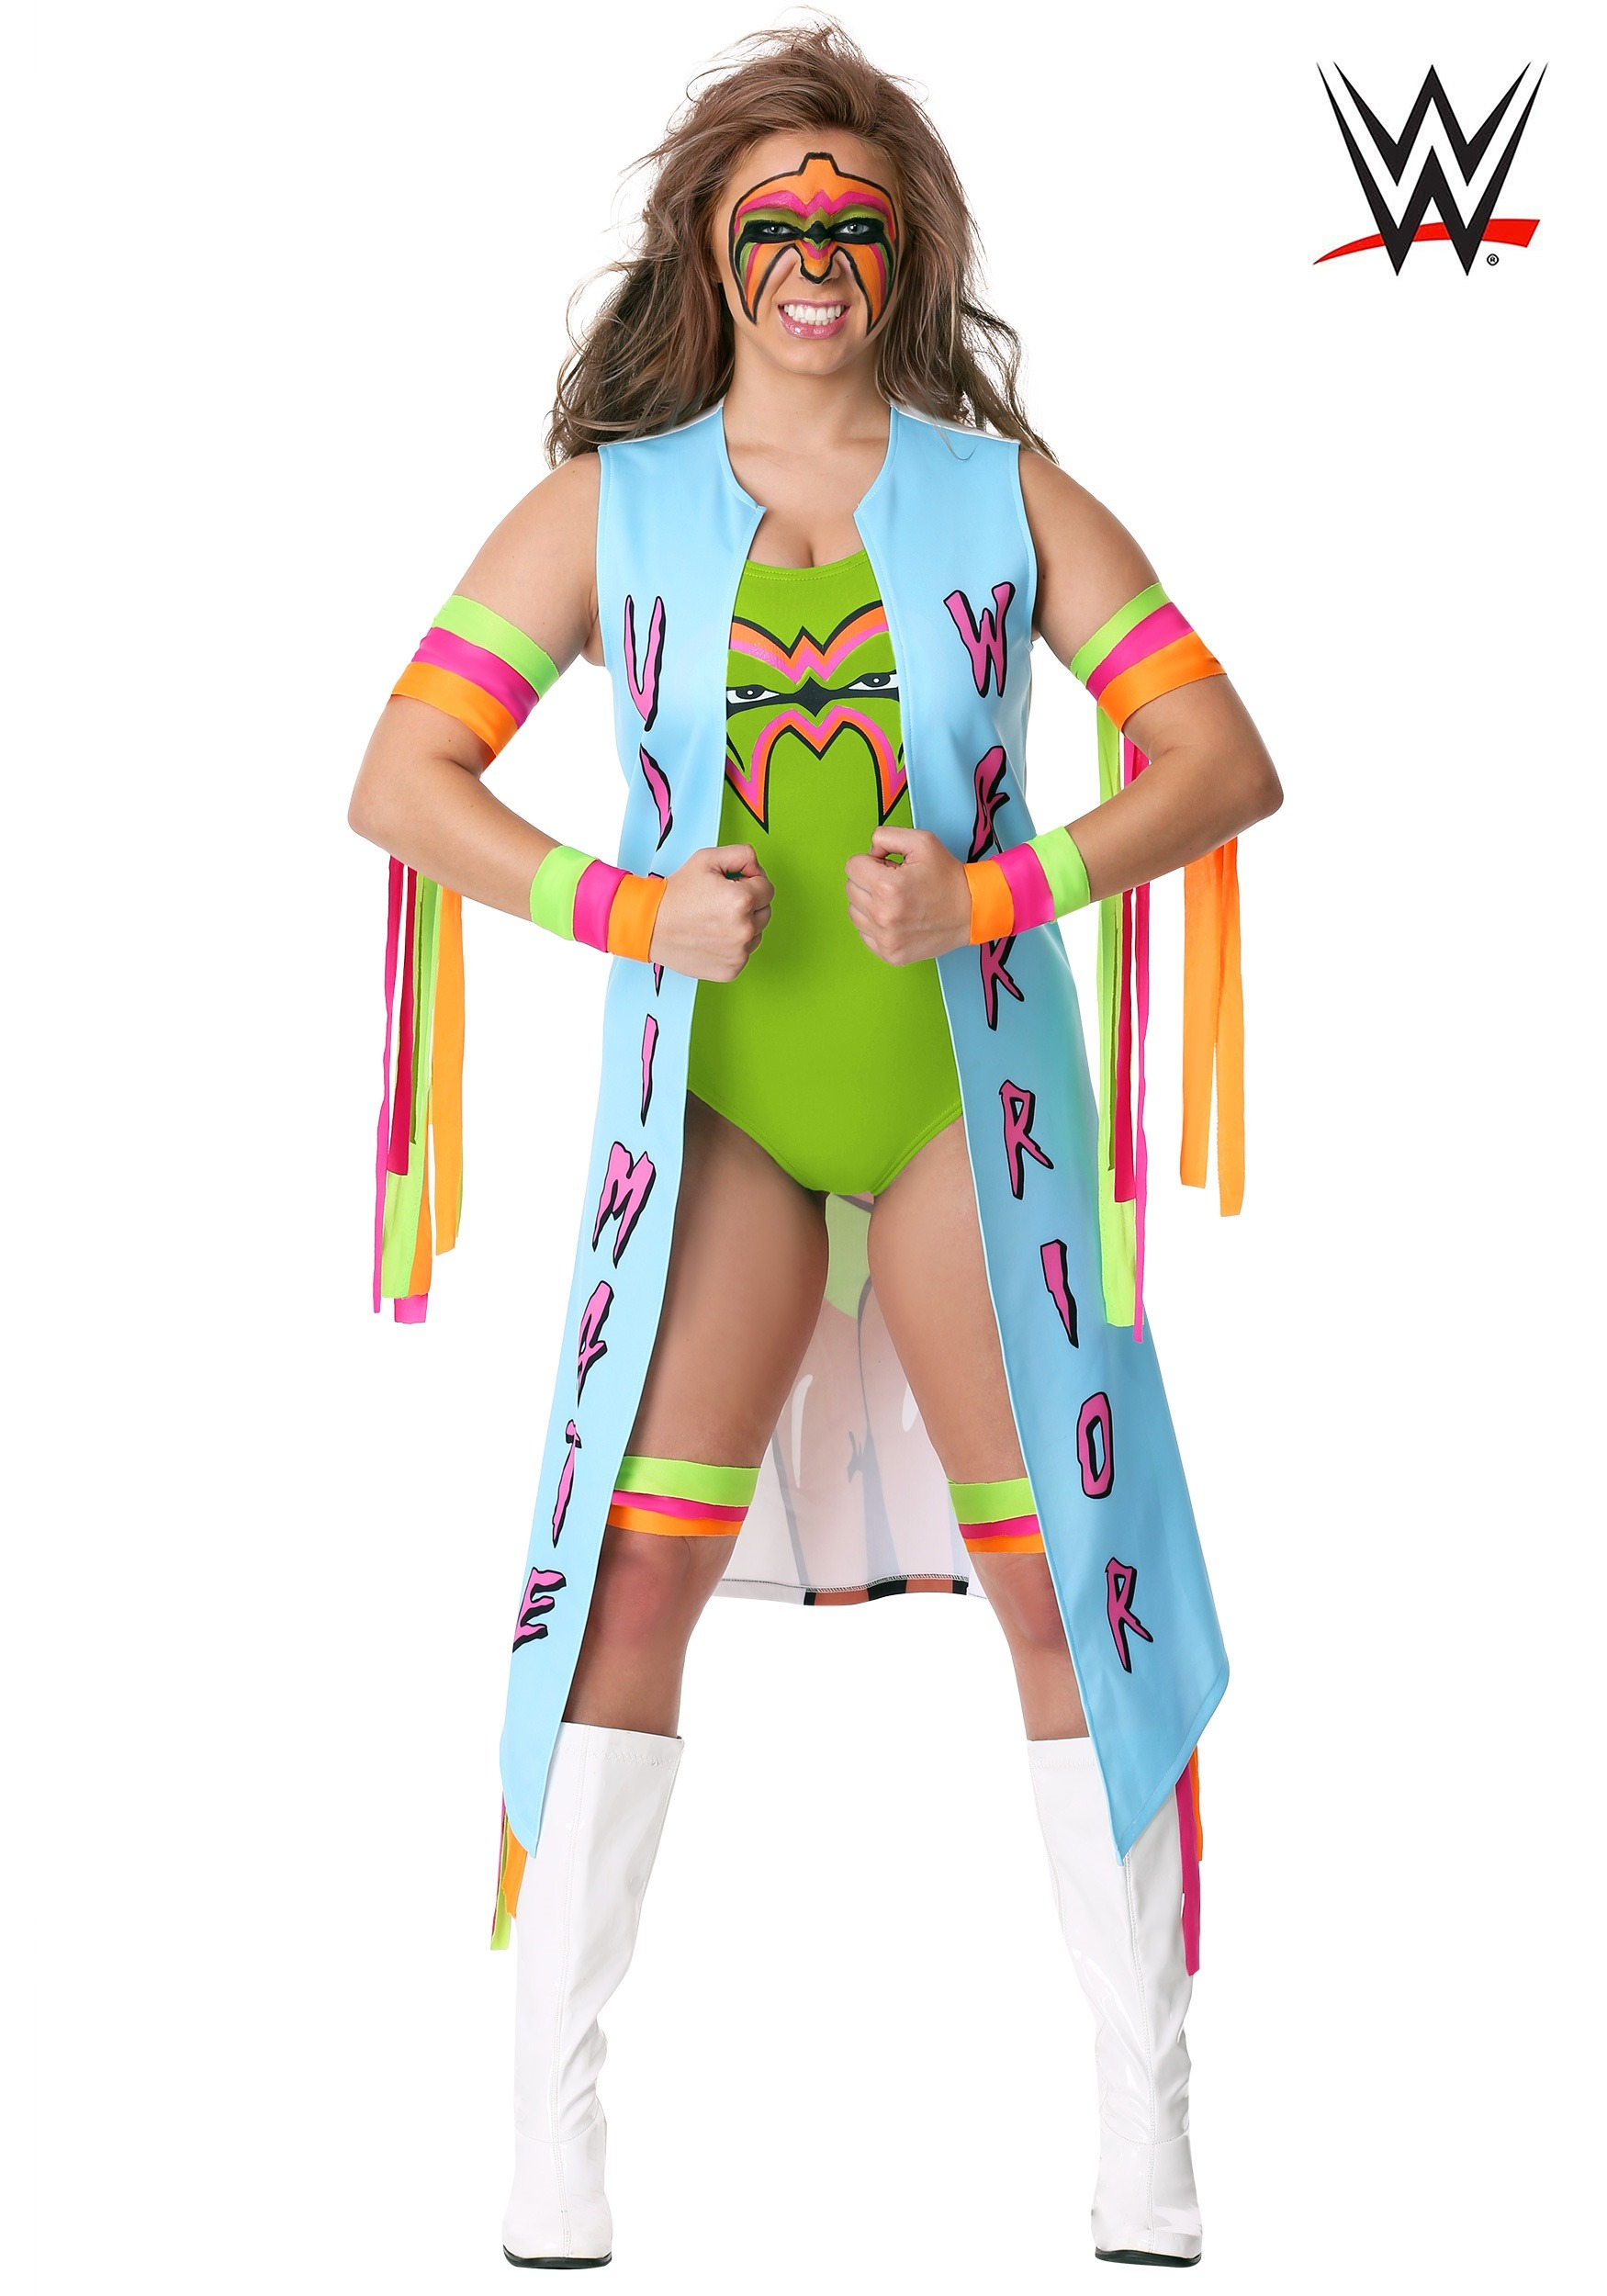 WWE Ultimate Warrior Costume